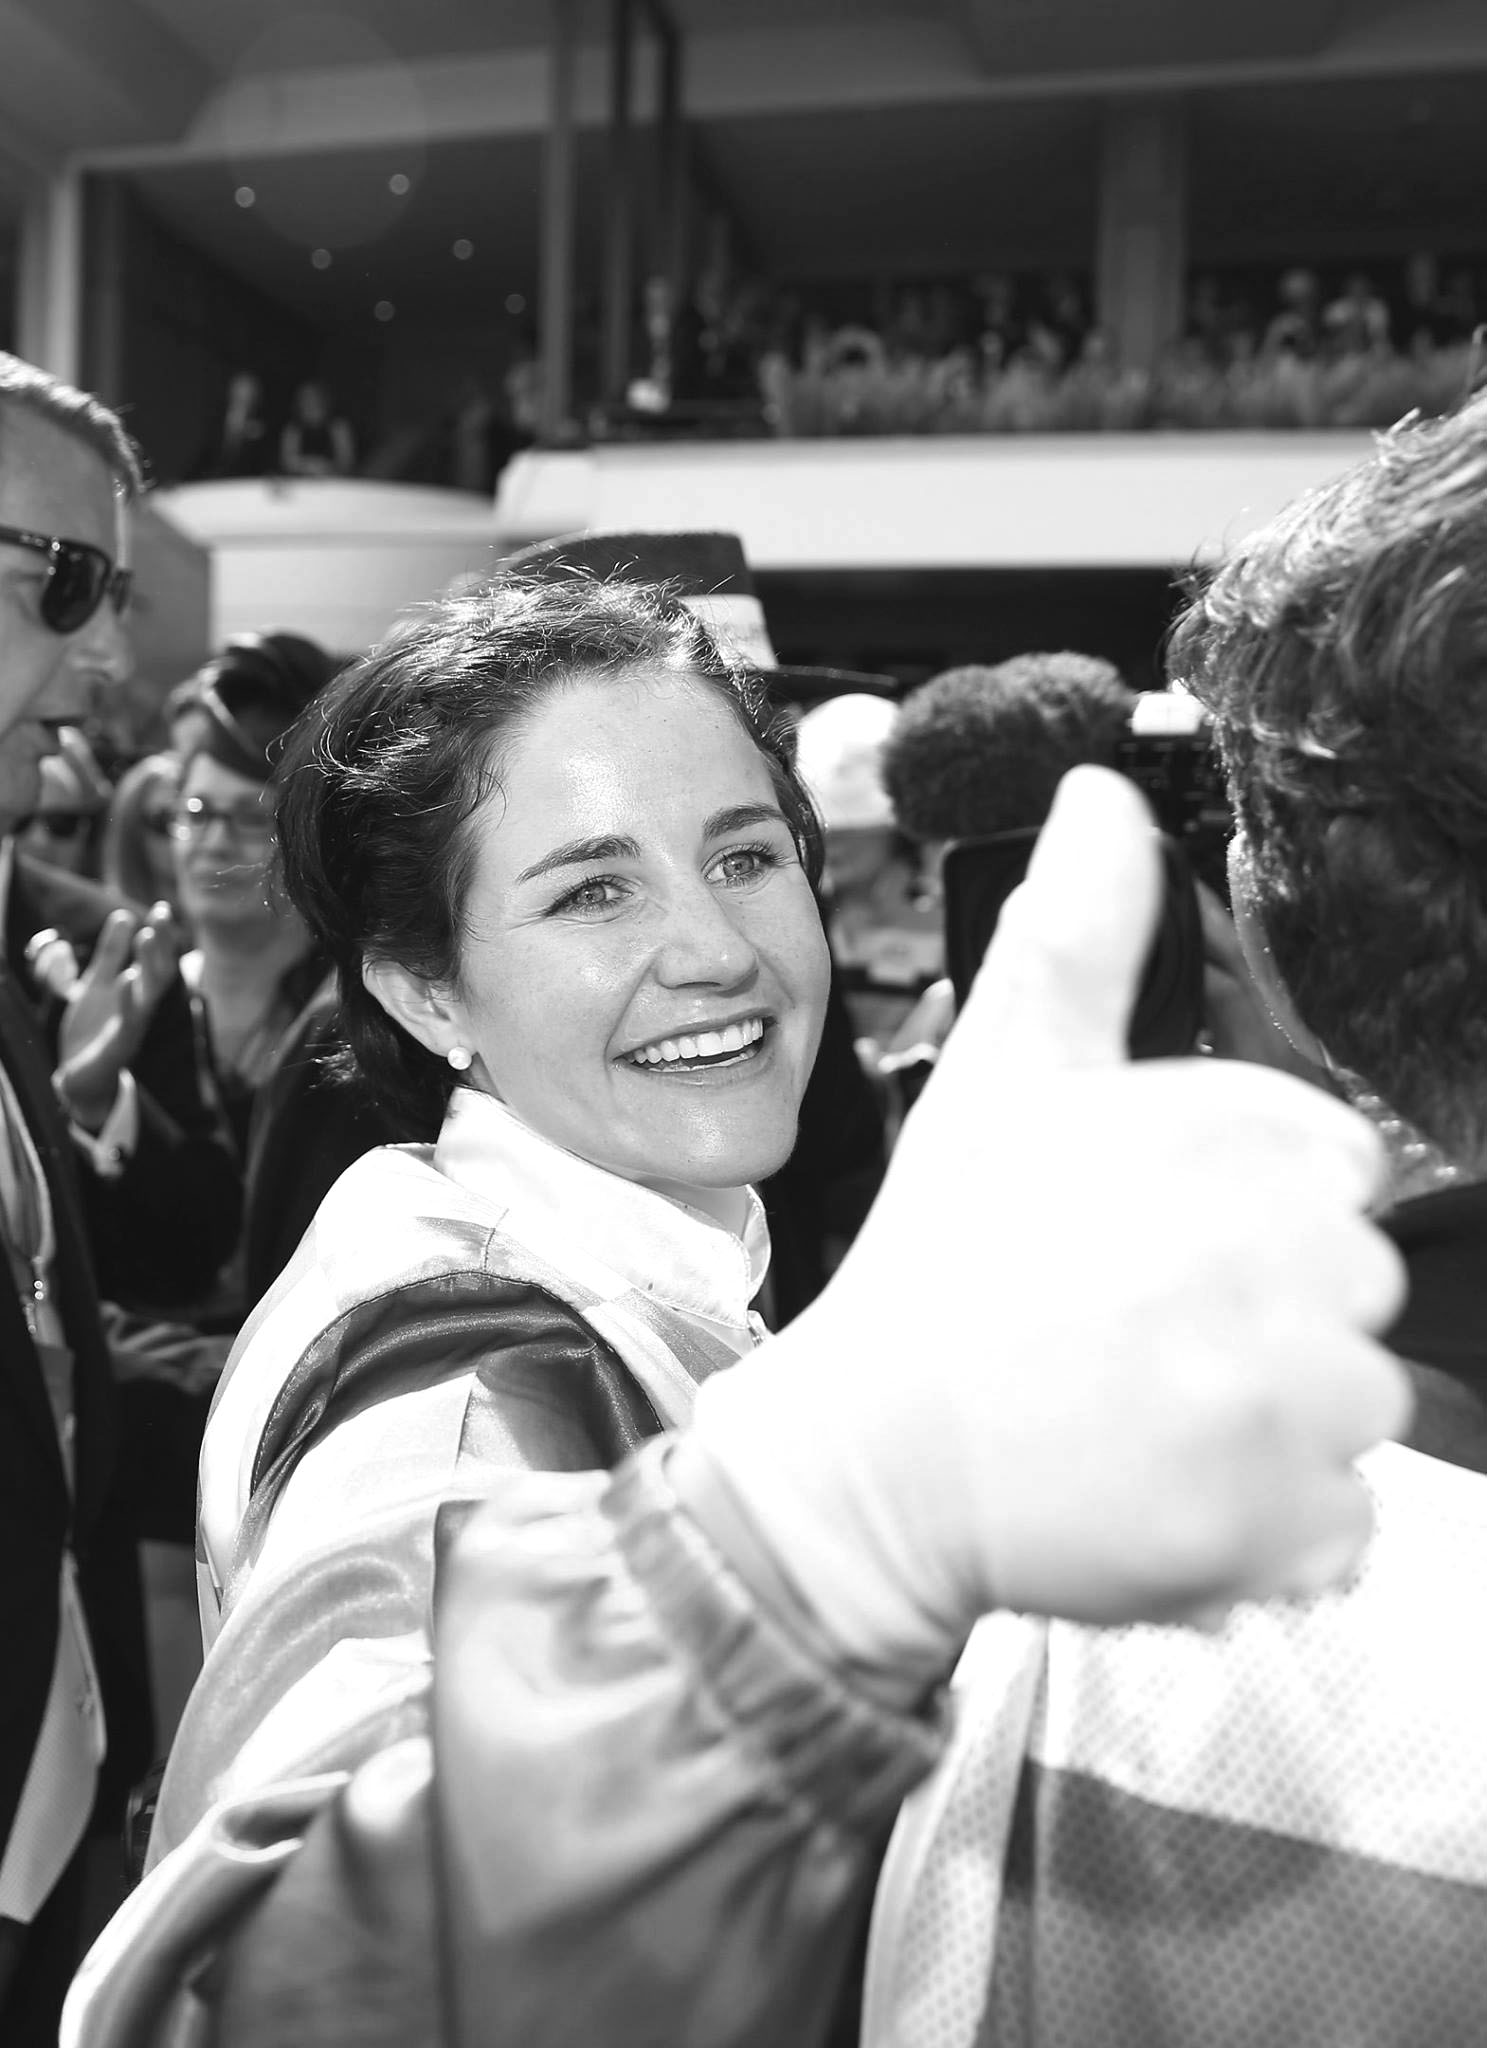 Michelle Payne was the first female jockey ever to win the Melbourne Cup.